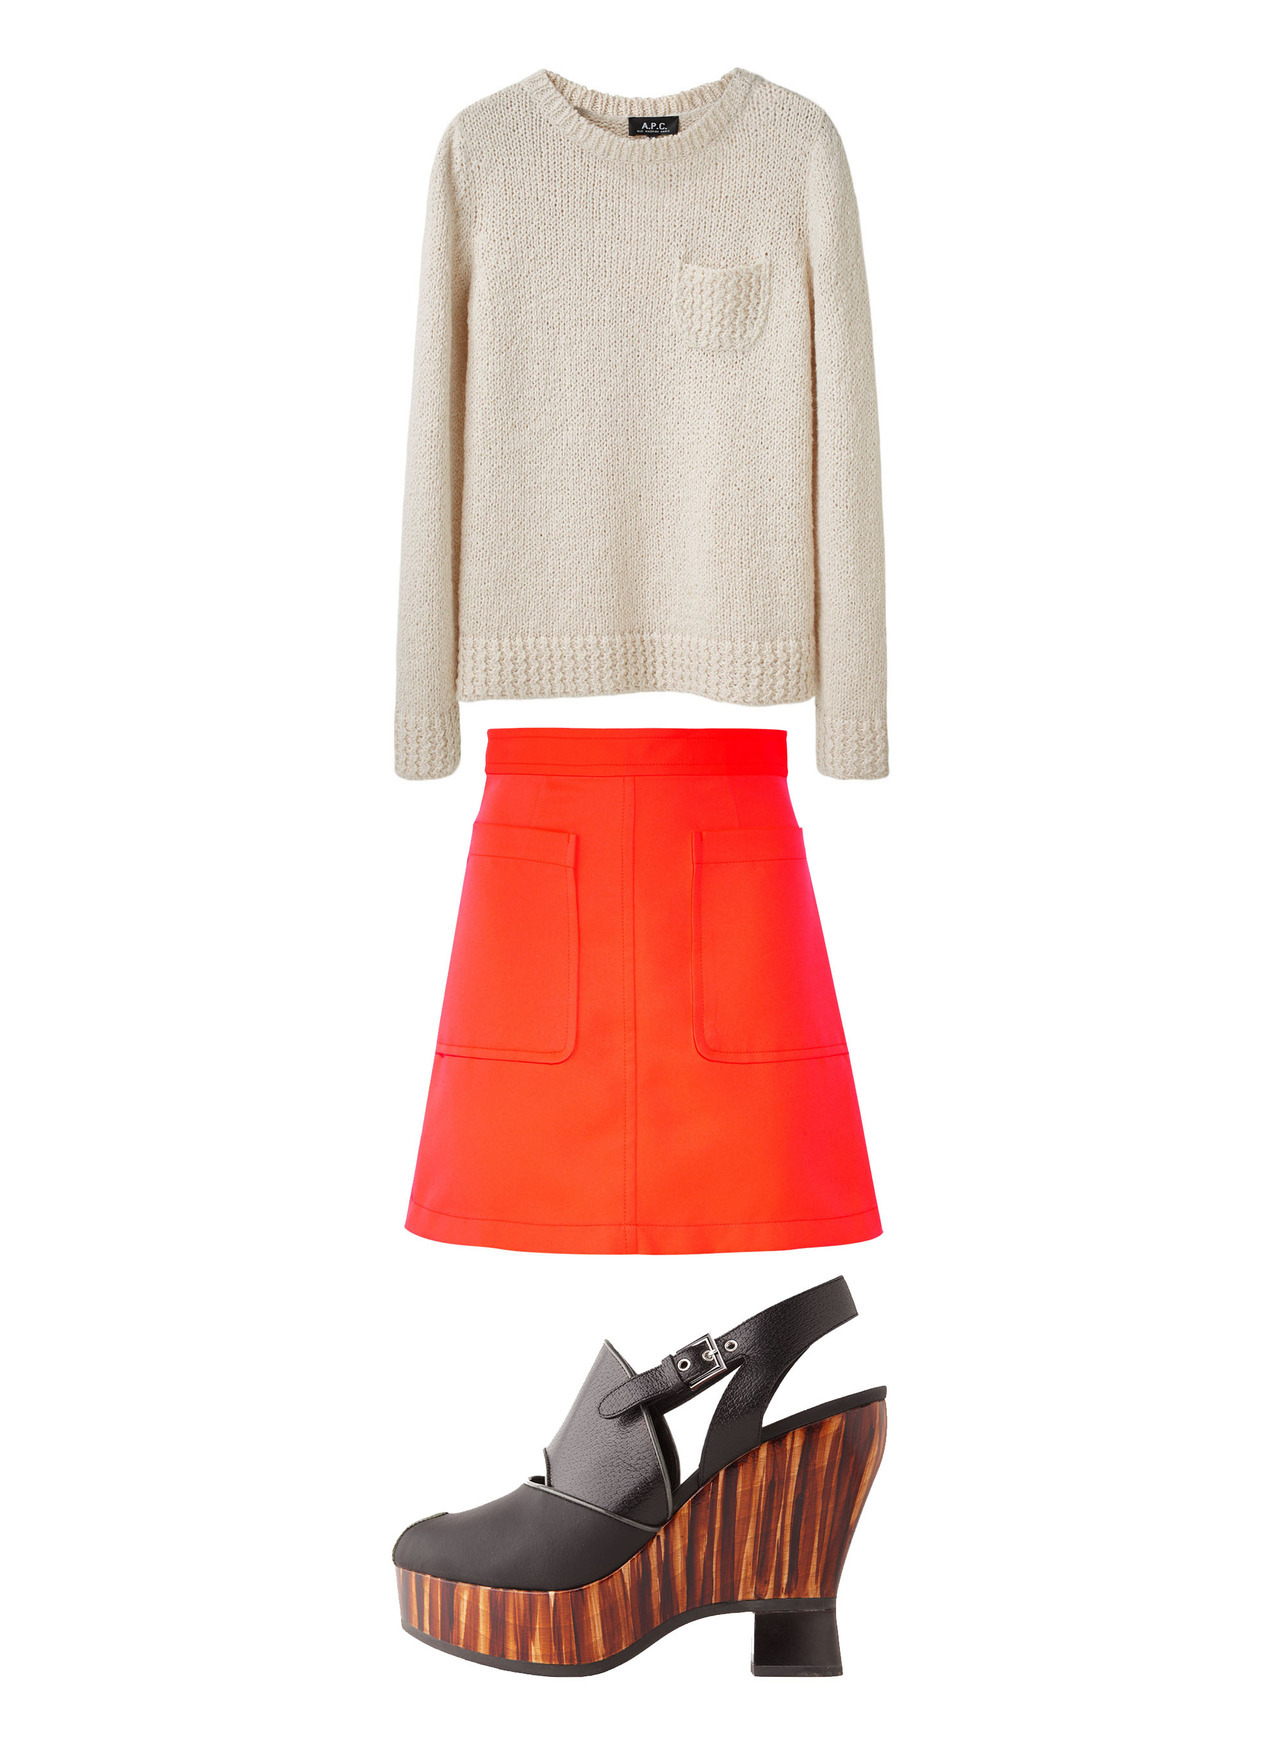 apc sweater, marc by marc jacobs skirt, proenza schouler shoes